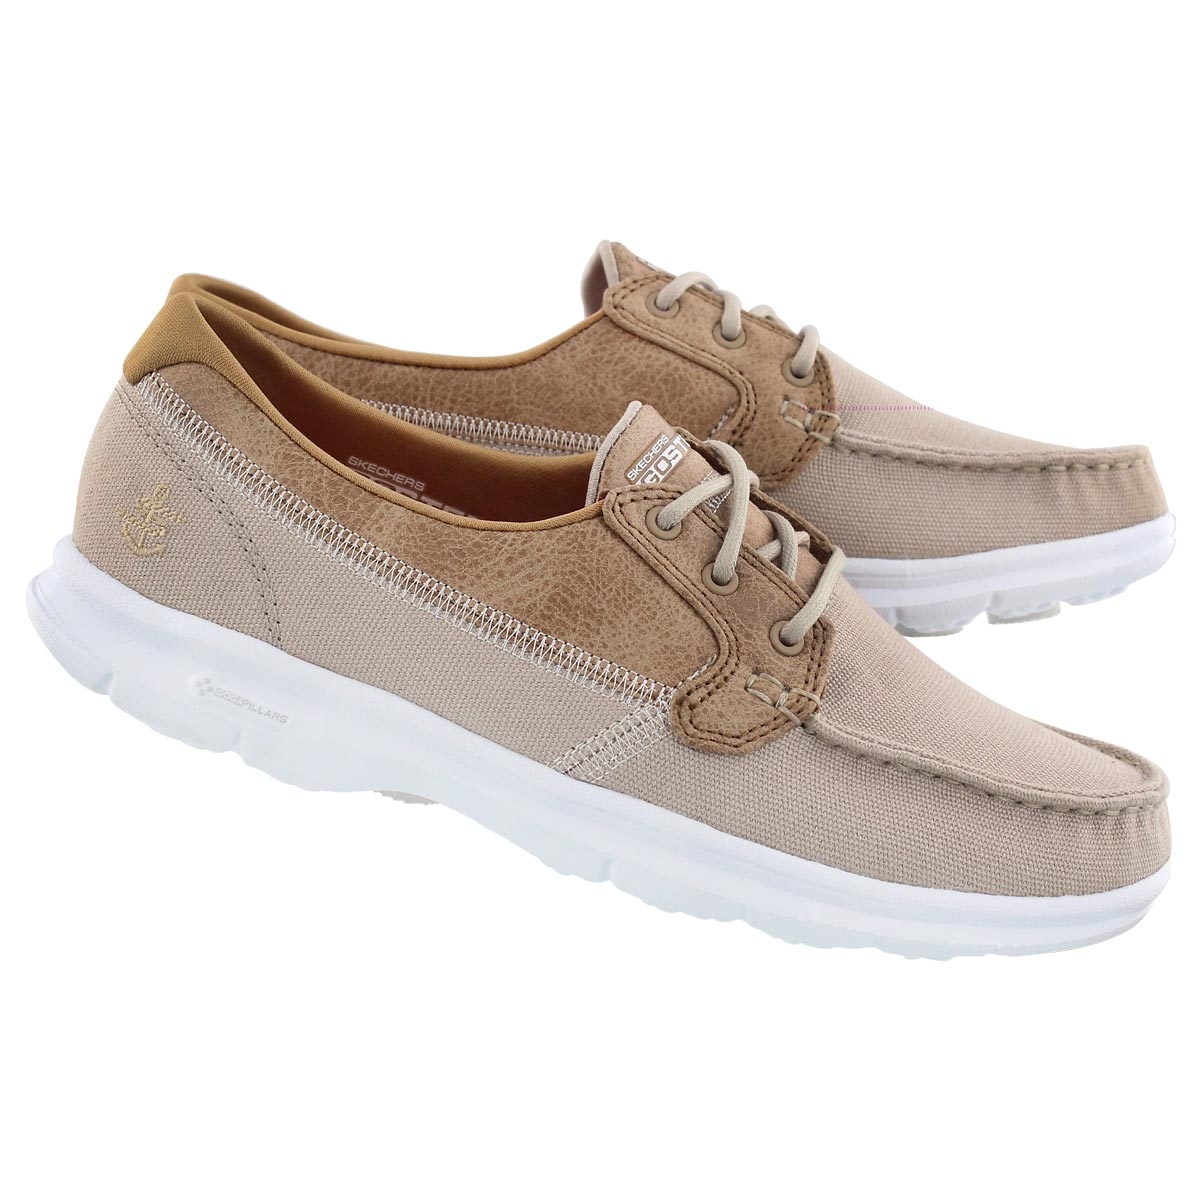 Lds GOstep Seashore natural boat shoe